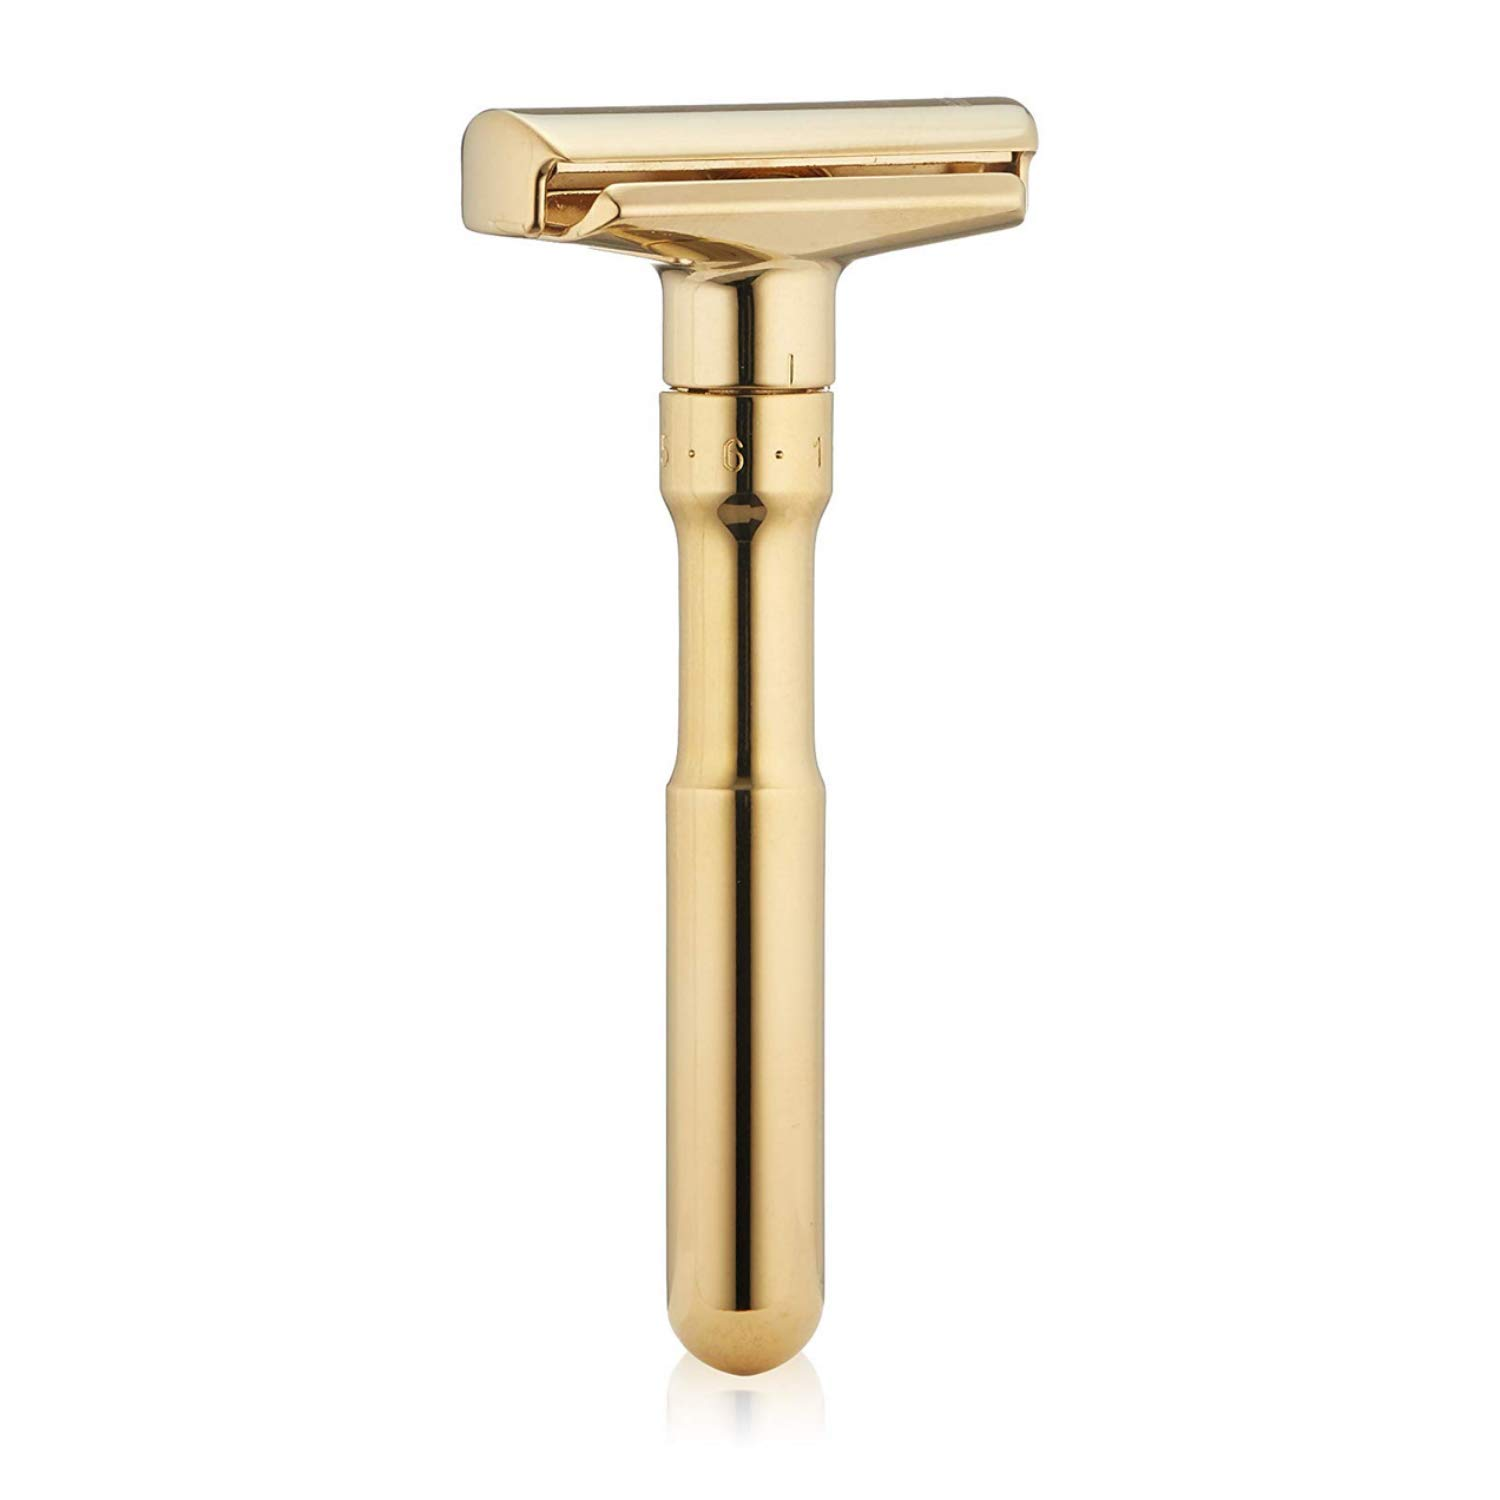 Merkur Adjustable Futur Safety Razor Gold Plated 702 by MERKUR